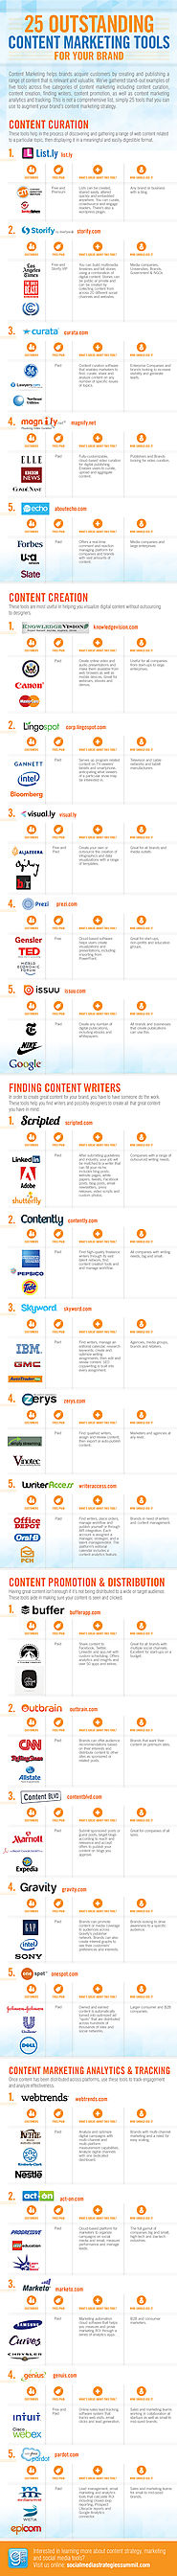 25 Content Marketing Tools for Curation, Creation, Promotion & Distribution [Infographic]